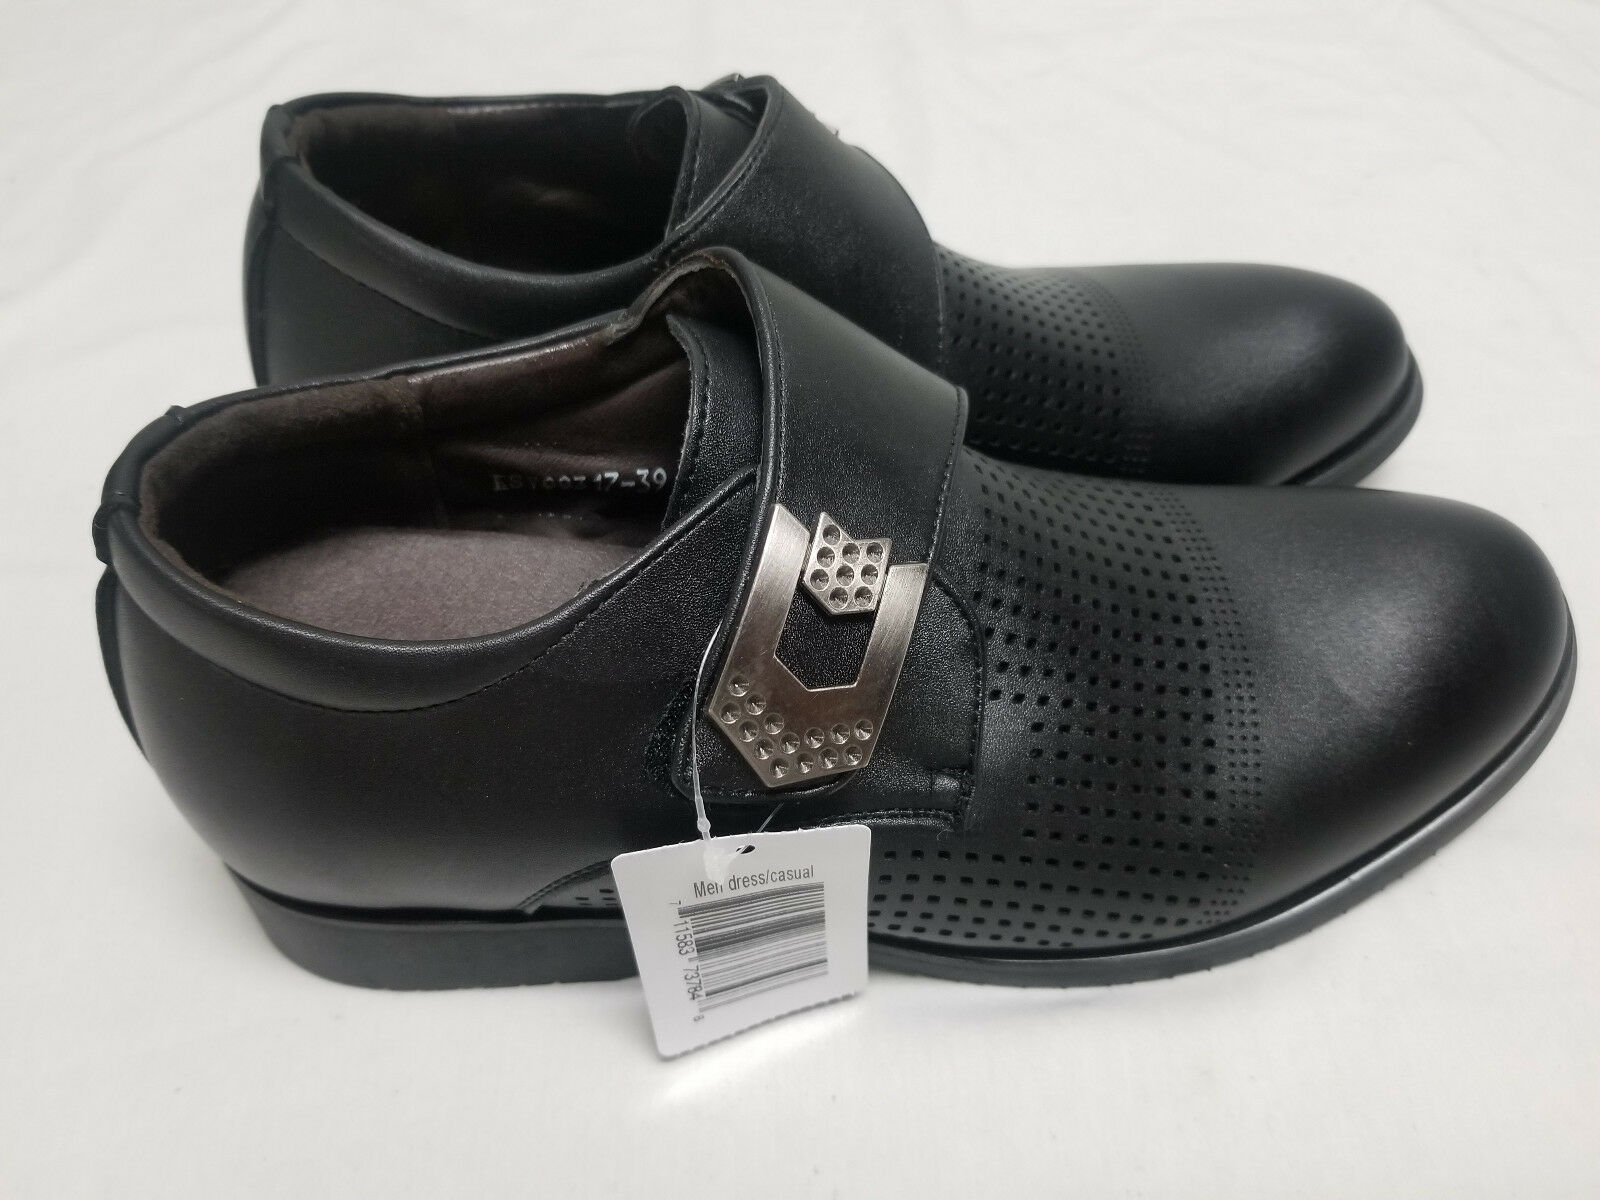 New Men's Dress Casual Formal Black Special Shoes Unbranded for Work Special Black Occasion 348d98